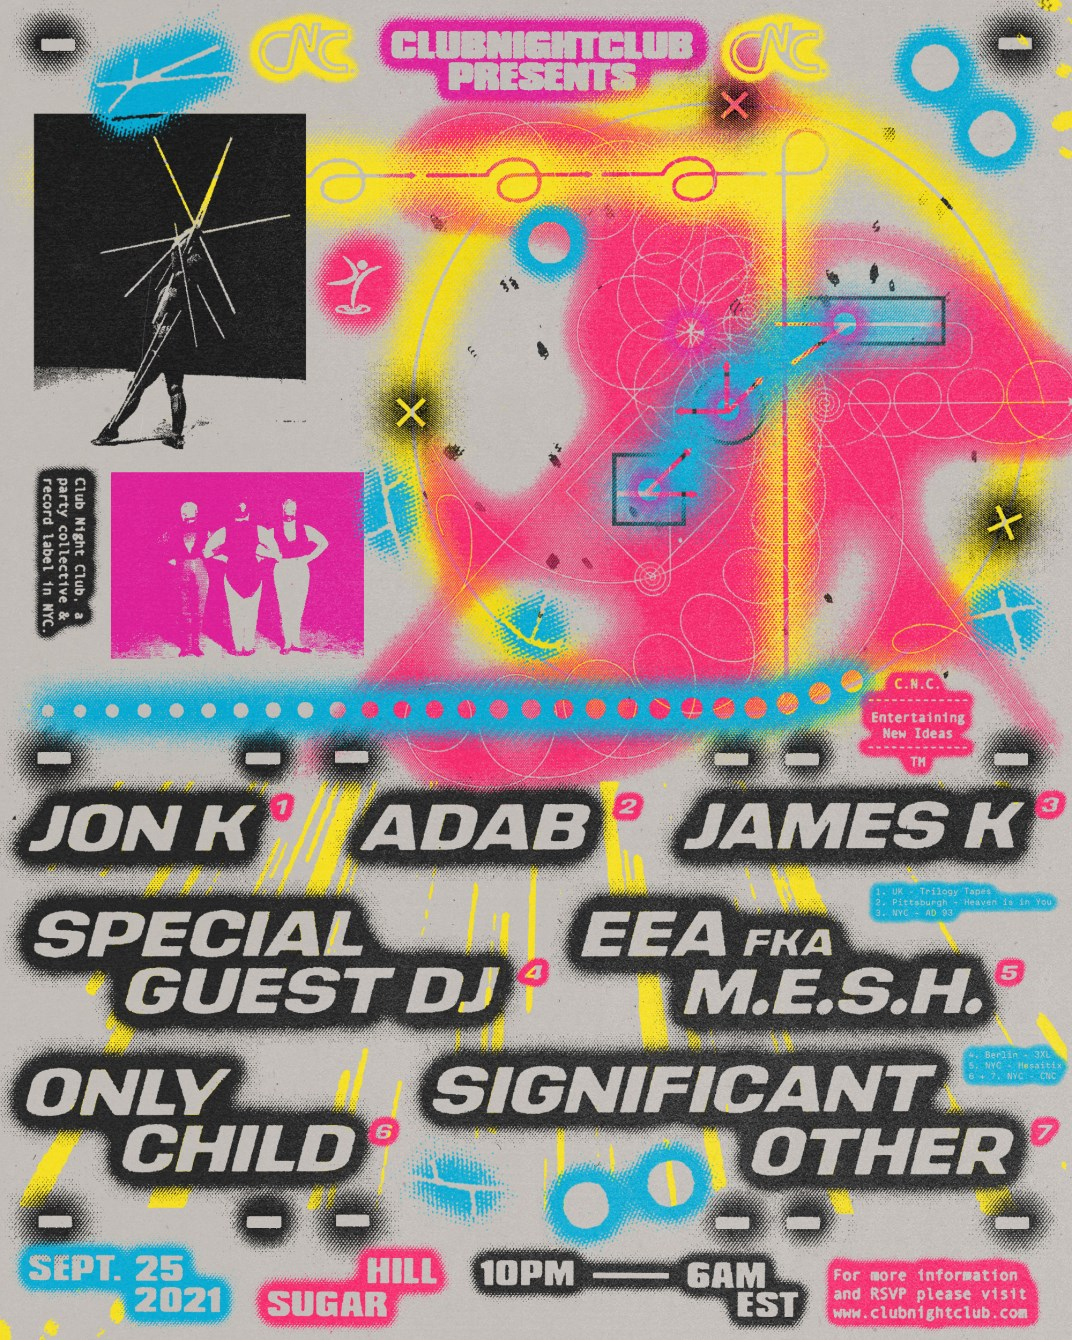 Club Night Club: Jon K, EEA (M.E.S.H.), Adab, James K - Flyer front